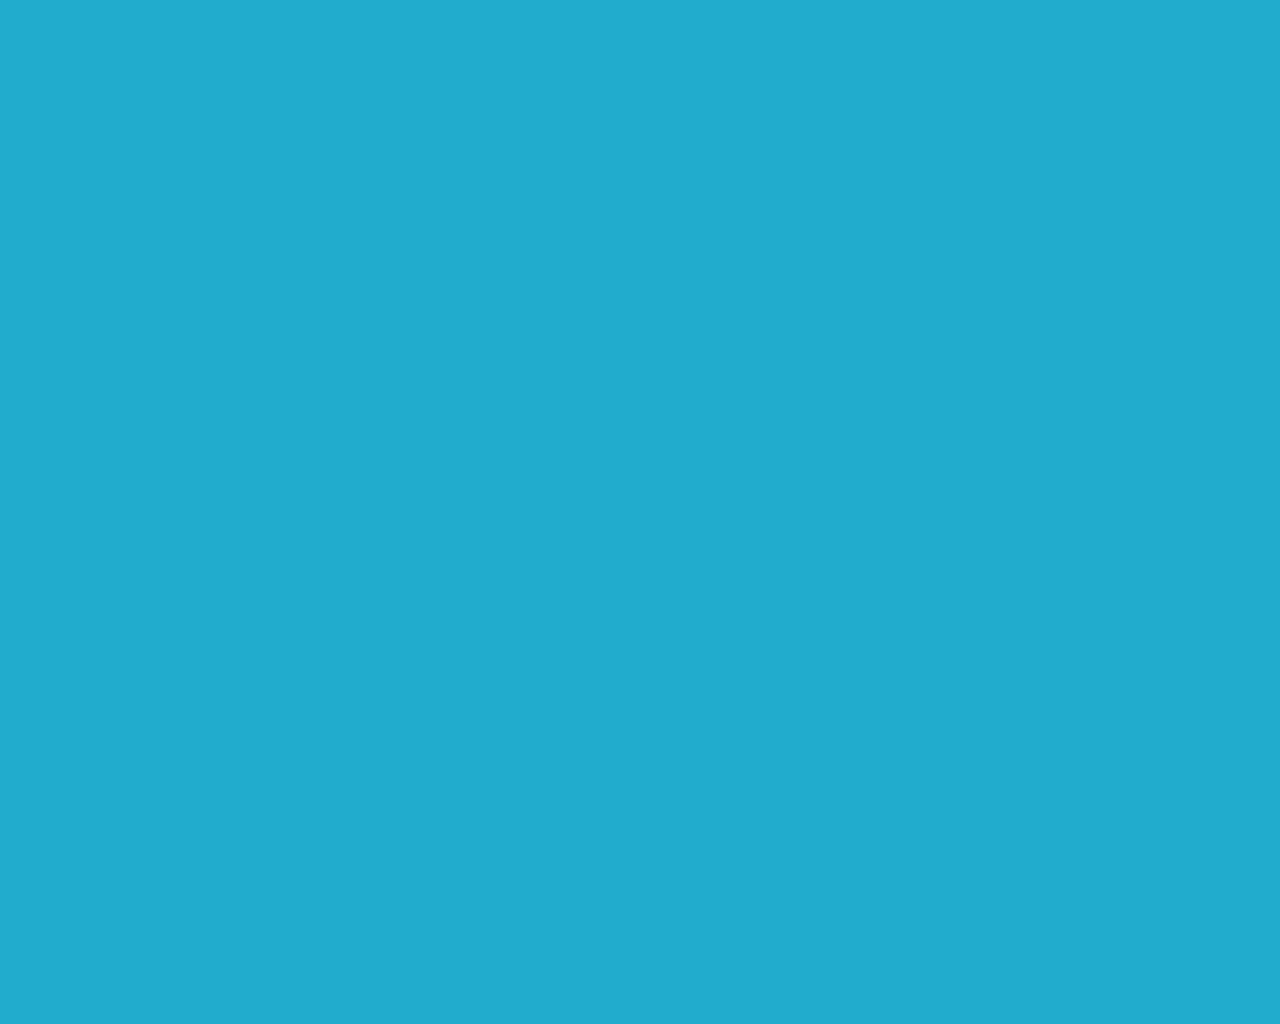 1280x1024 Ball Blue Solid Color Background